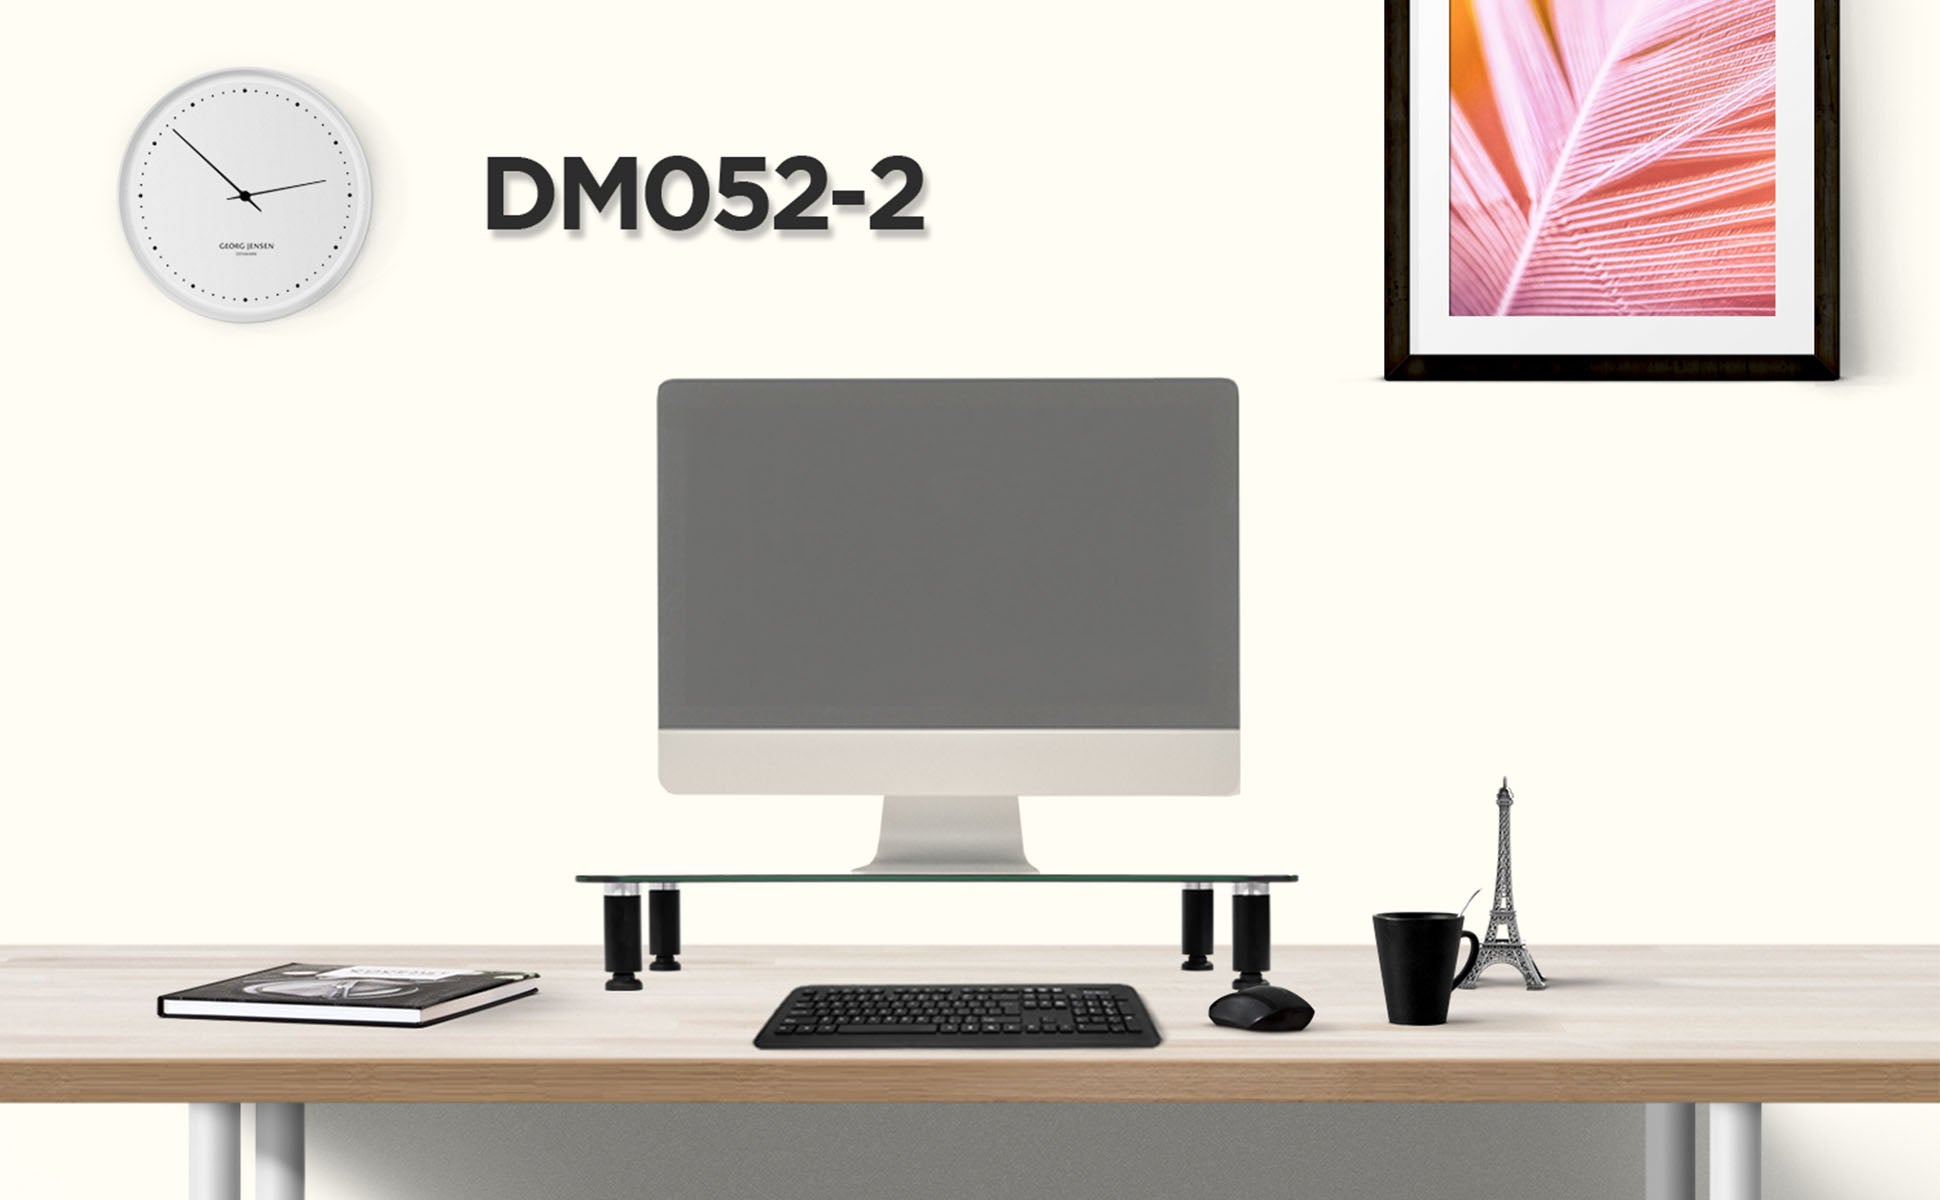 dm451x1, silver, desk, mount, bracket, stand, support, riser, arm, double, two, twin, duo, dual, office, computer